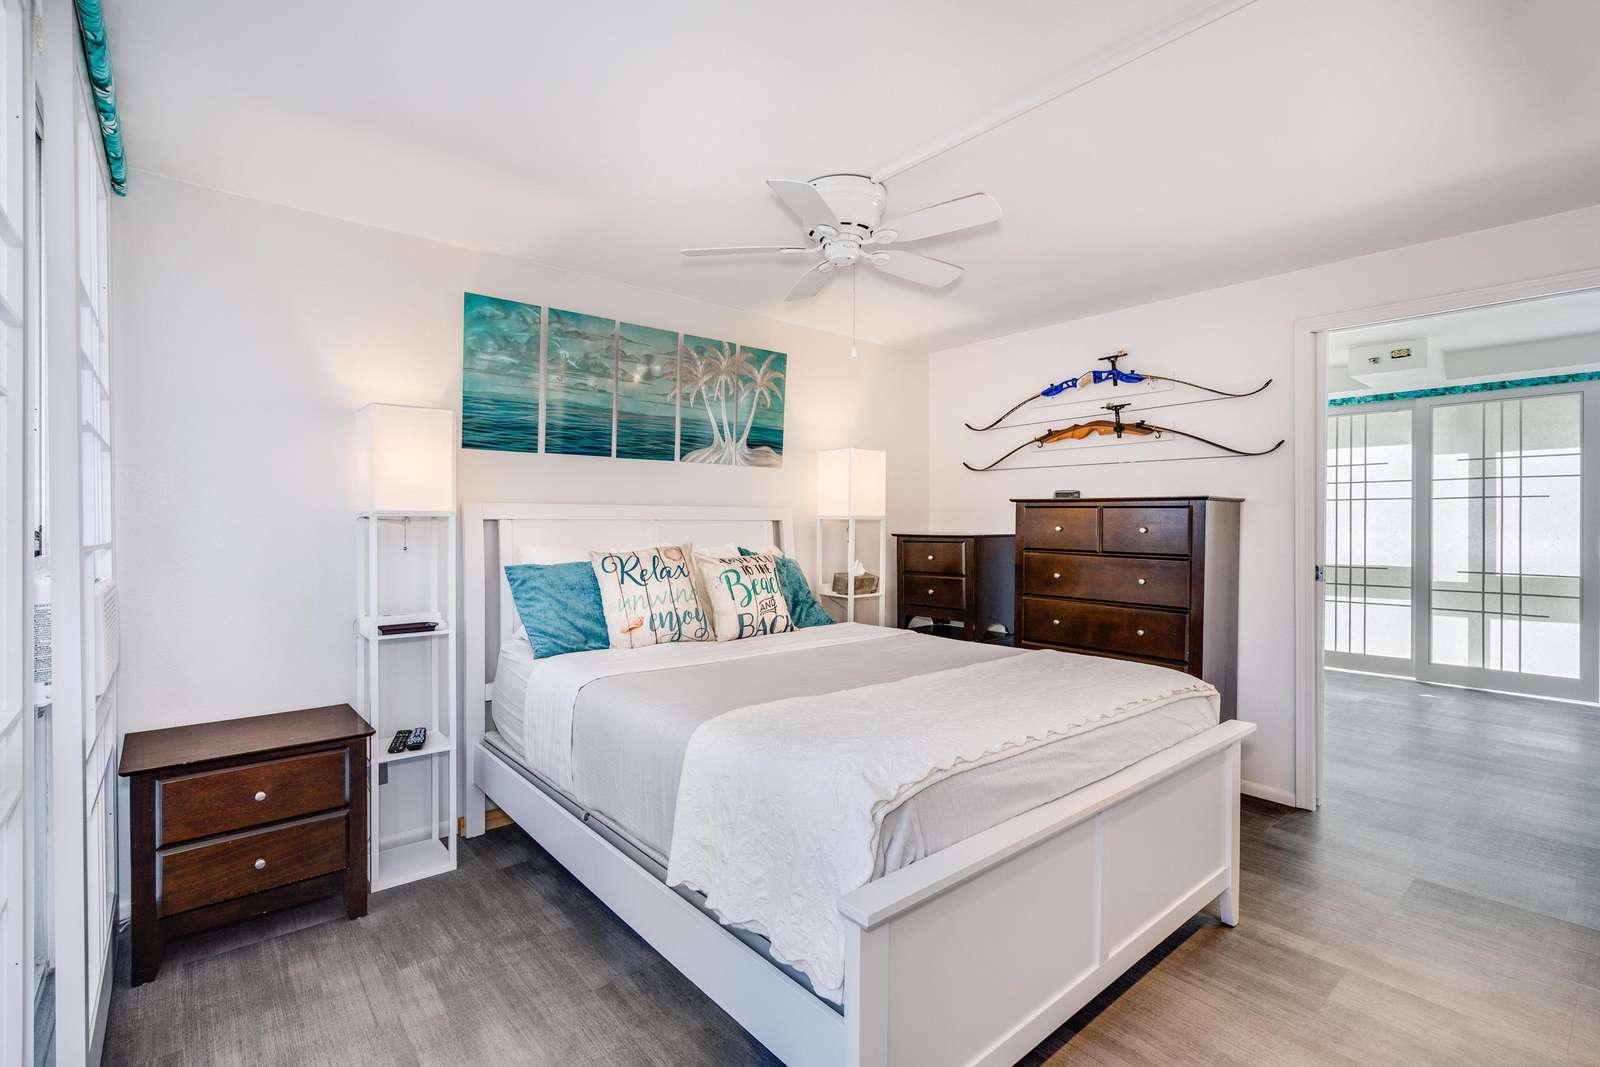 Master bedroom with ample drawers and closet space.